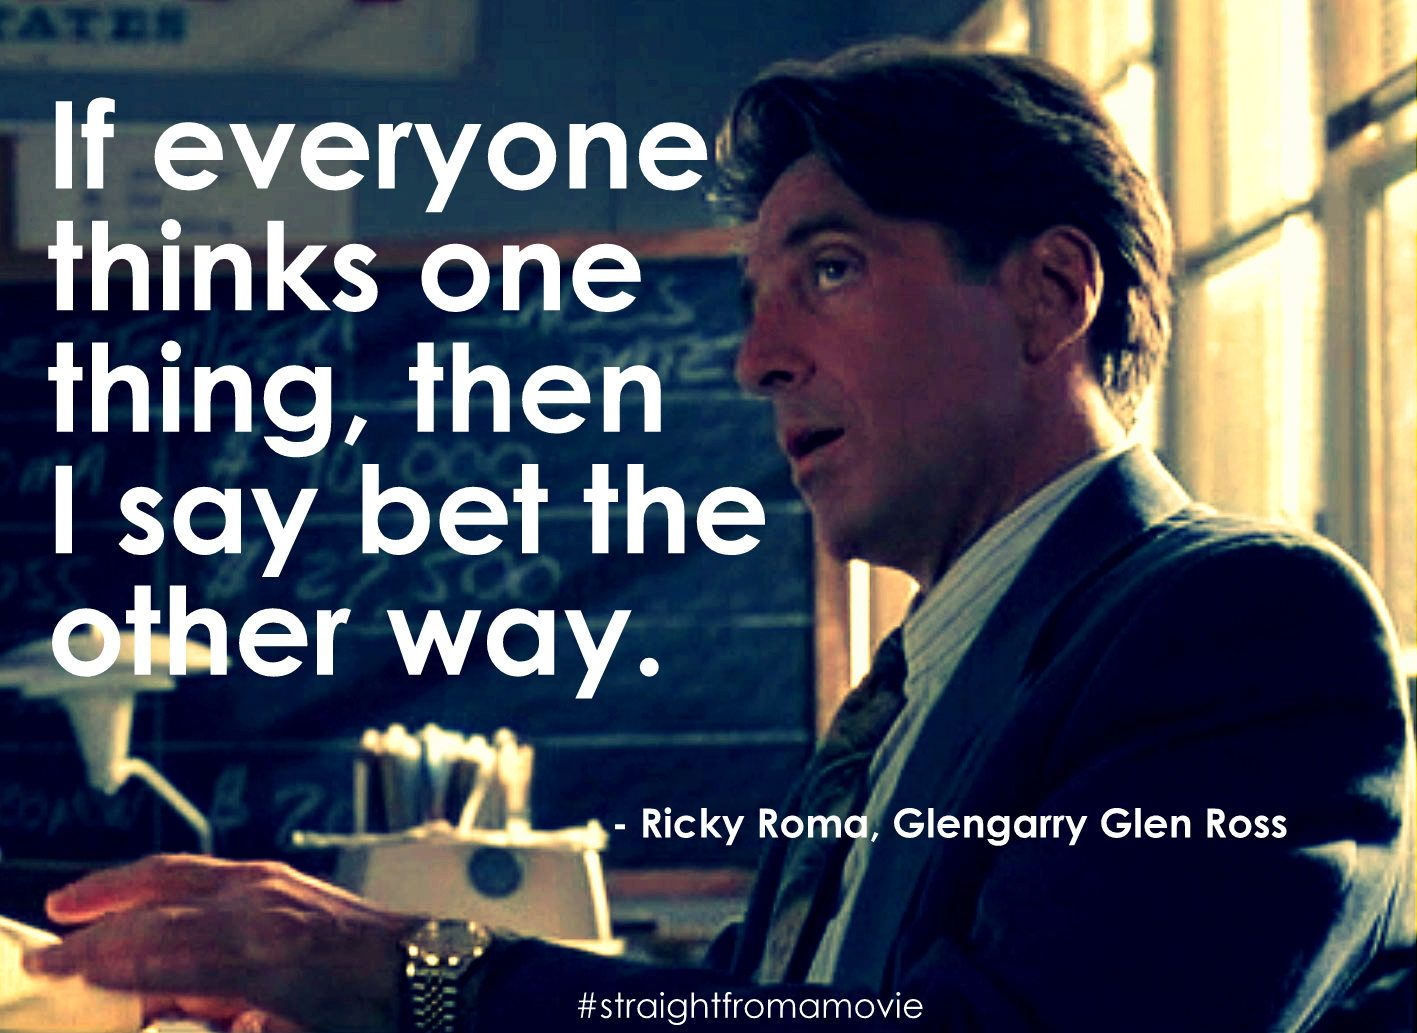 Glengarry Glen Ross Quotes Quote from Glengarry Glen Ross | Straight From a Movie | Pinterest  Glengarry Glen Ross Quotes